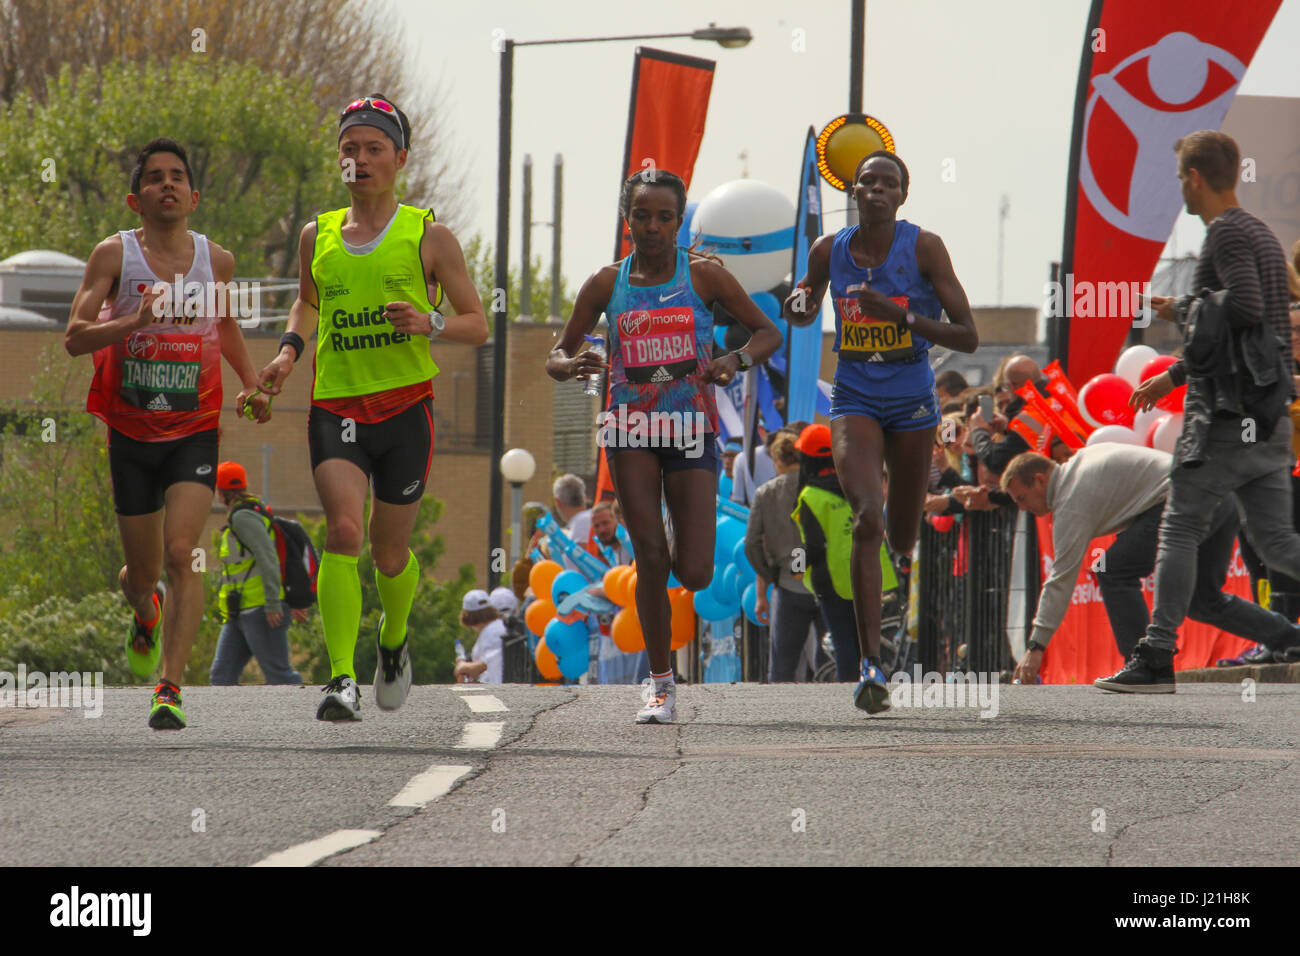 London, UK. 23rd Apr, 2017.  Tirunesh DIBABA (ETH) who came second in the womens run seen with Helah KIPROP (KEN) - Stock Image